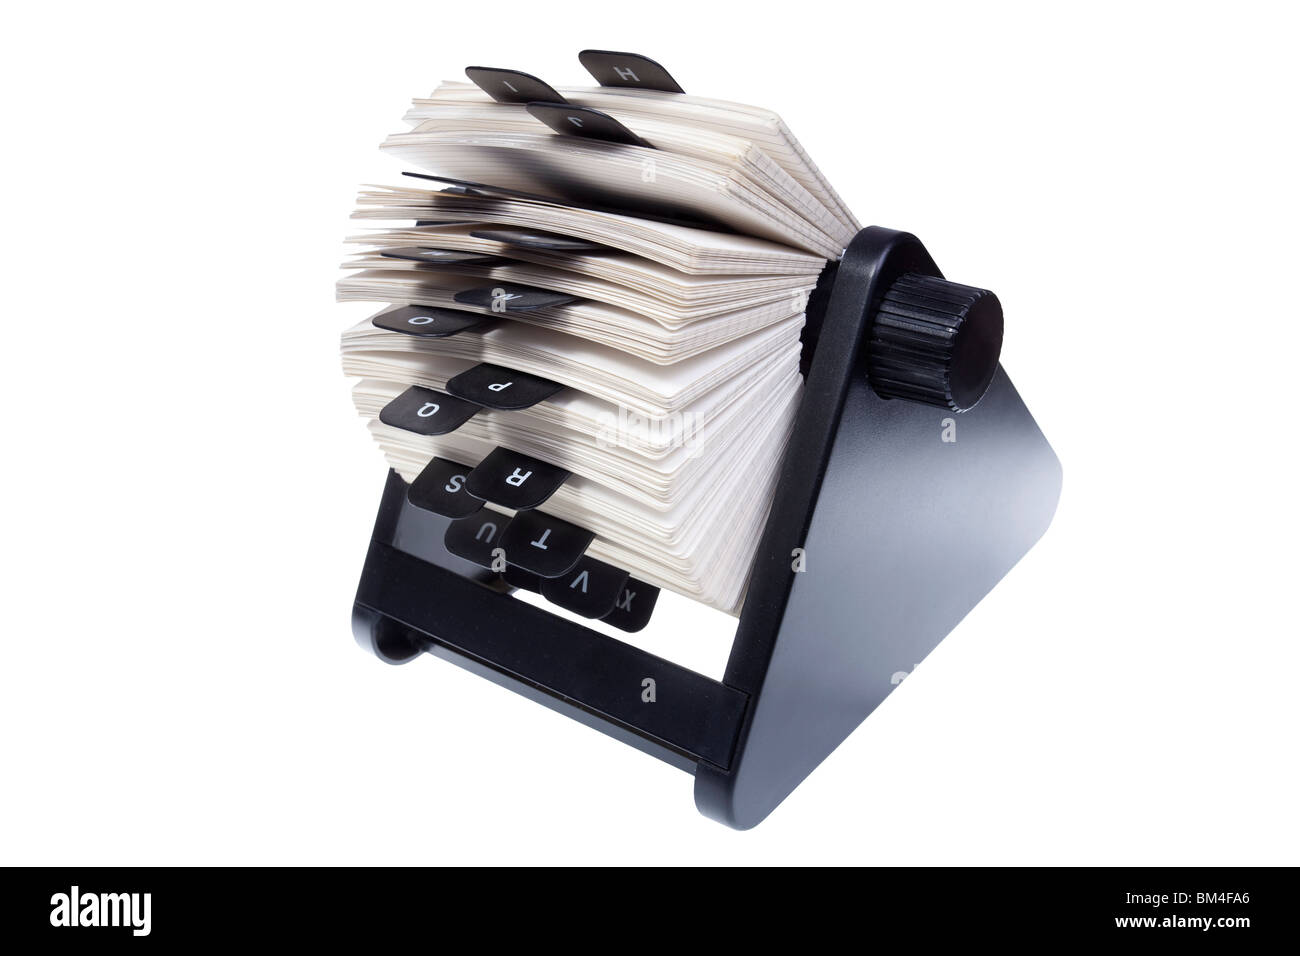 rotary card file for storing contact information - Stock Image